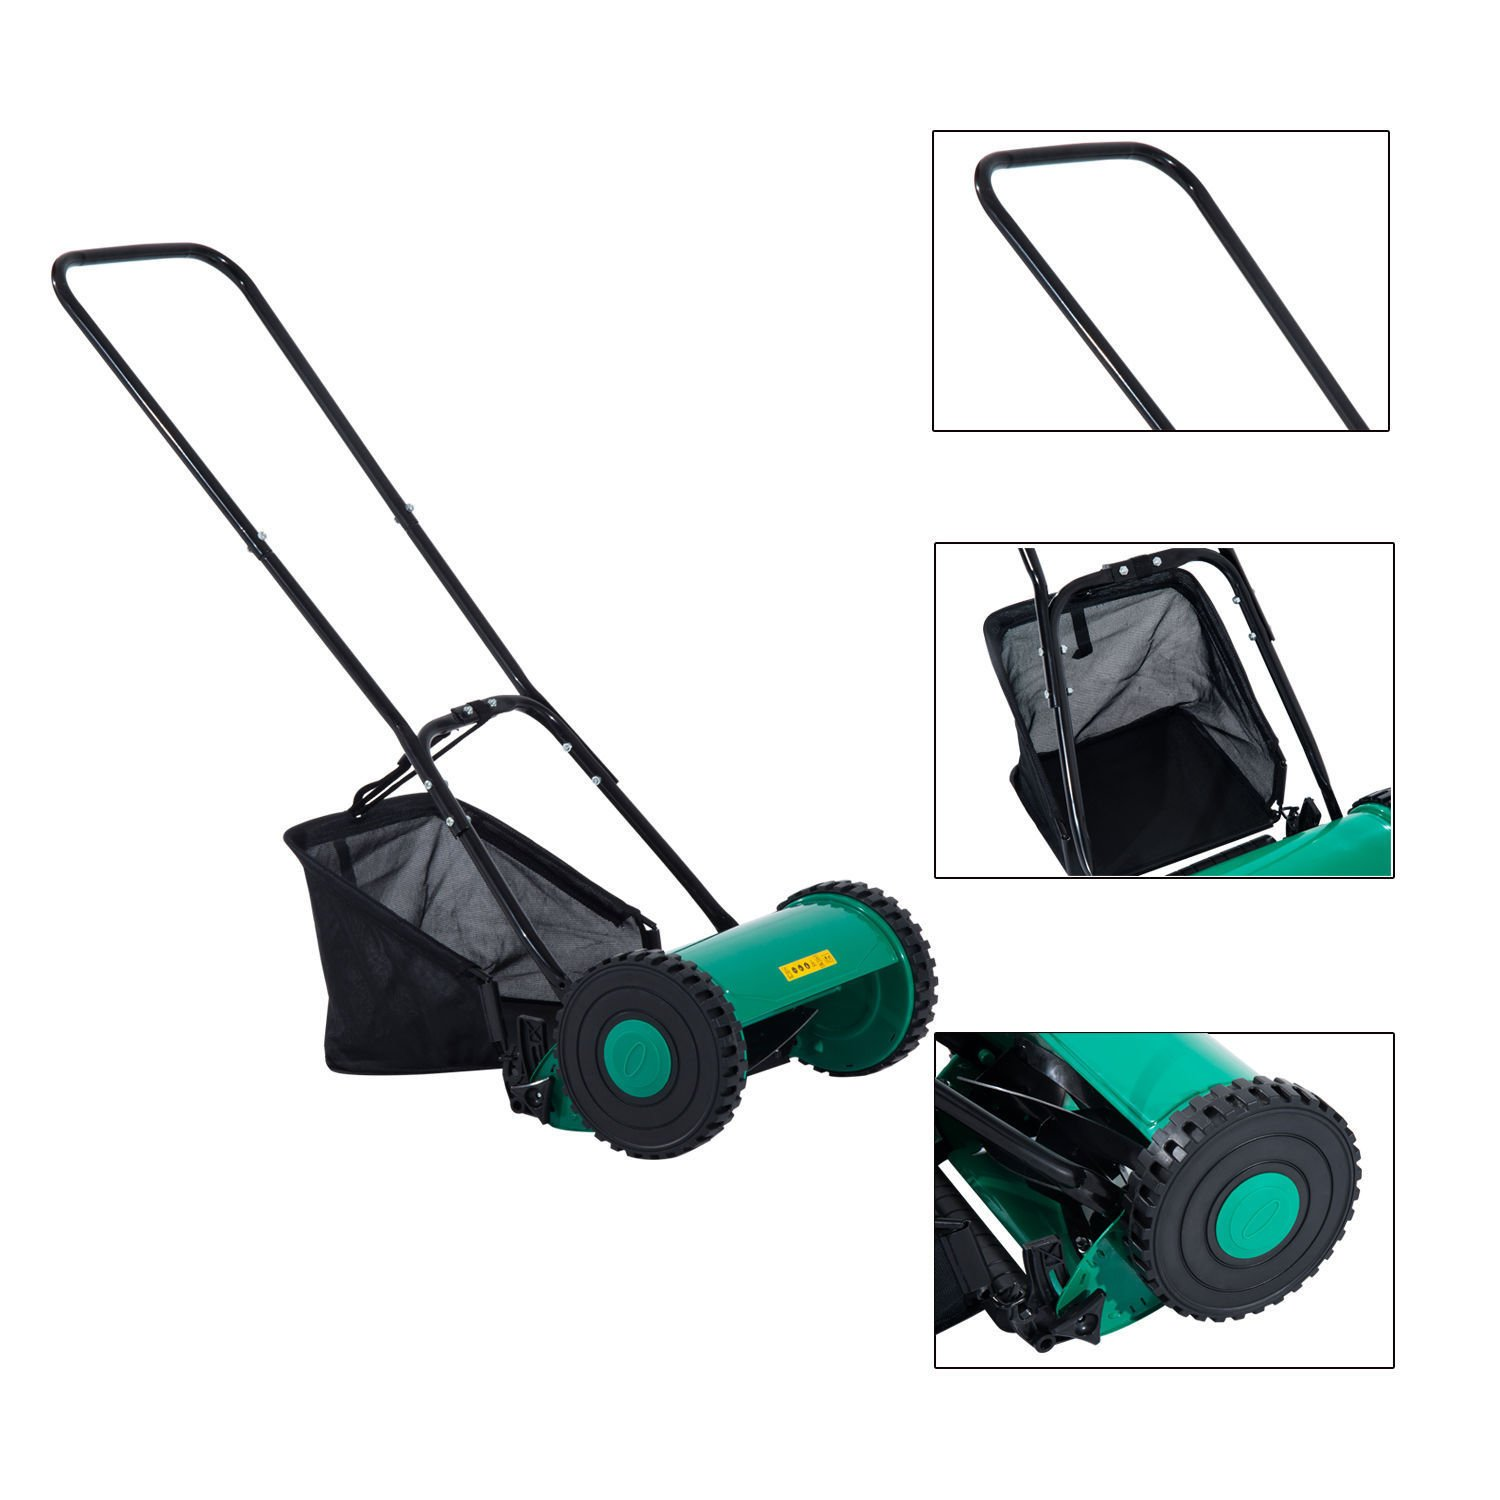 Globe House Products GHP Outdoor Green & Black Compact Light-weight 6.6 Gallons Capacity Push Lawn Mower